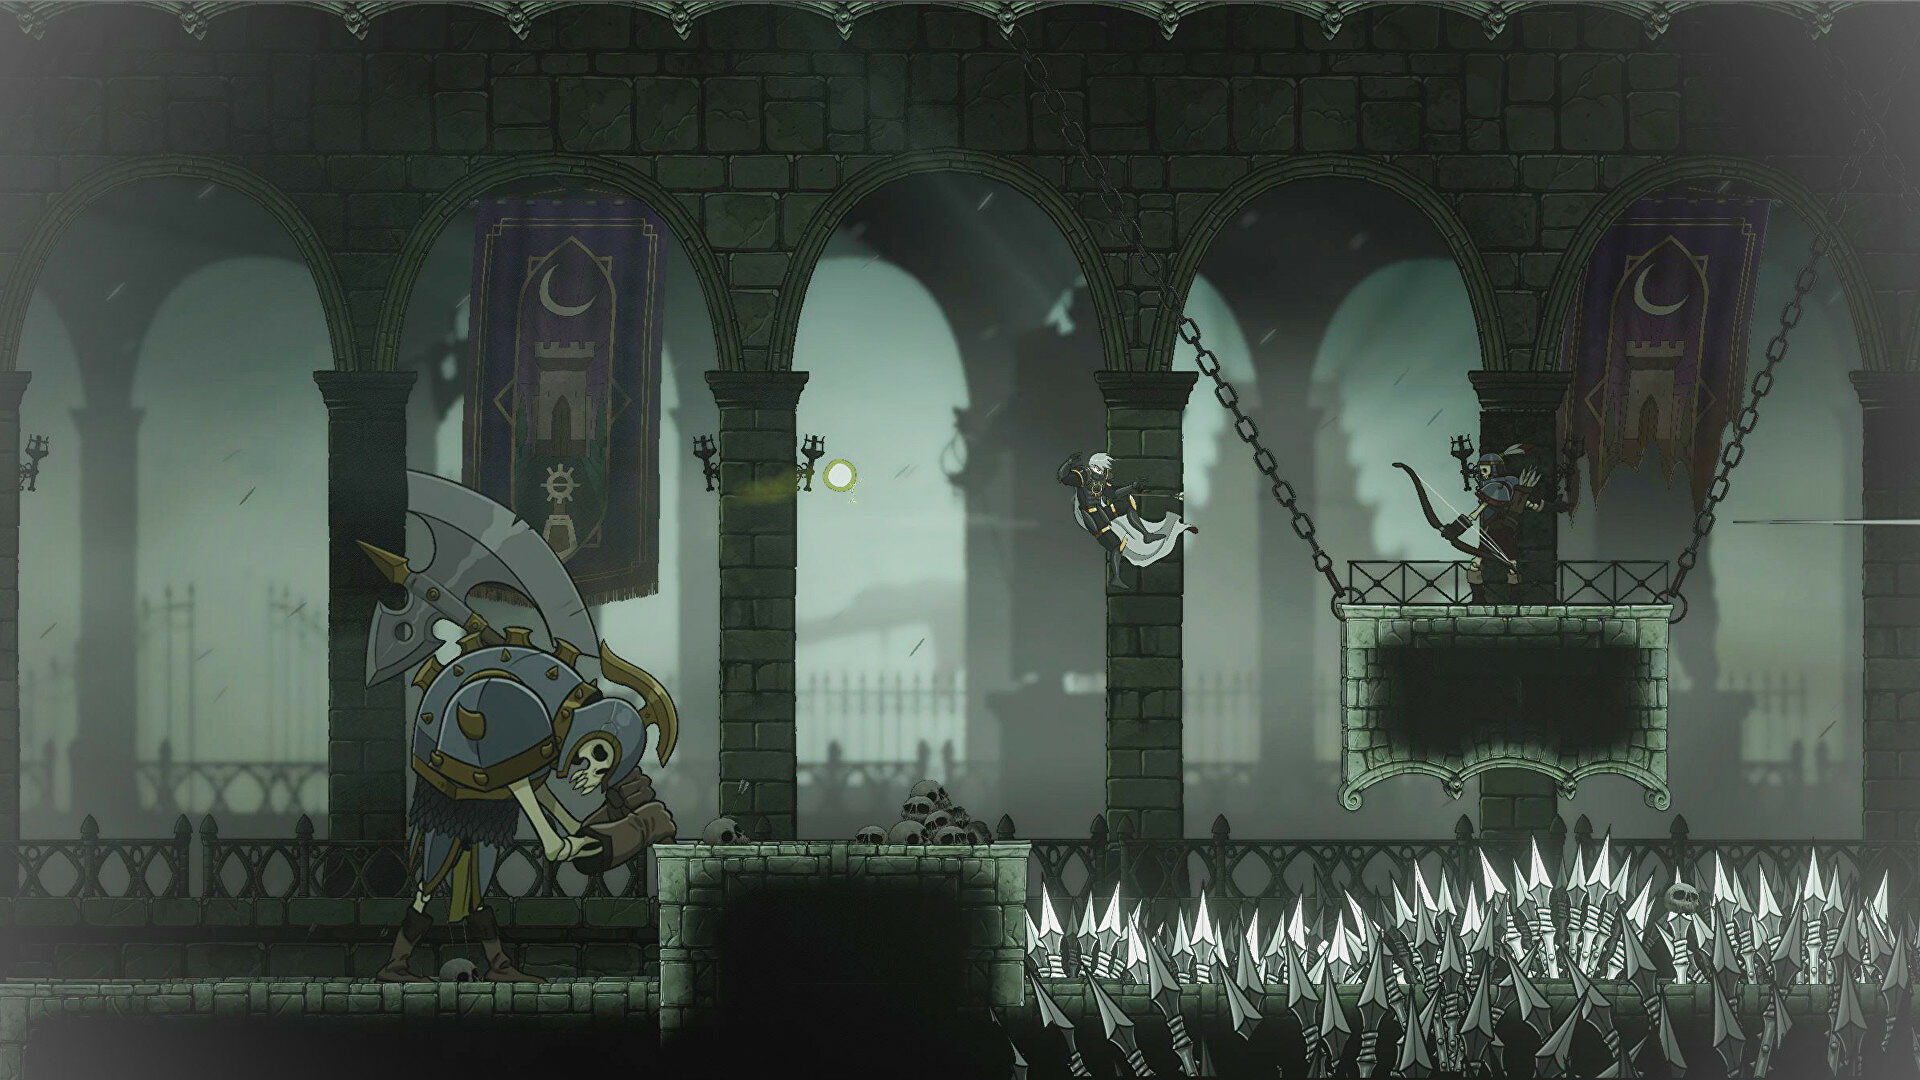 This new metroidvania's world reminds me of Hollow Knight